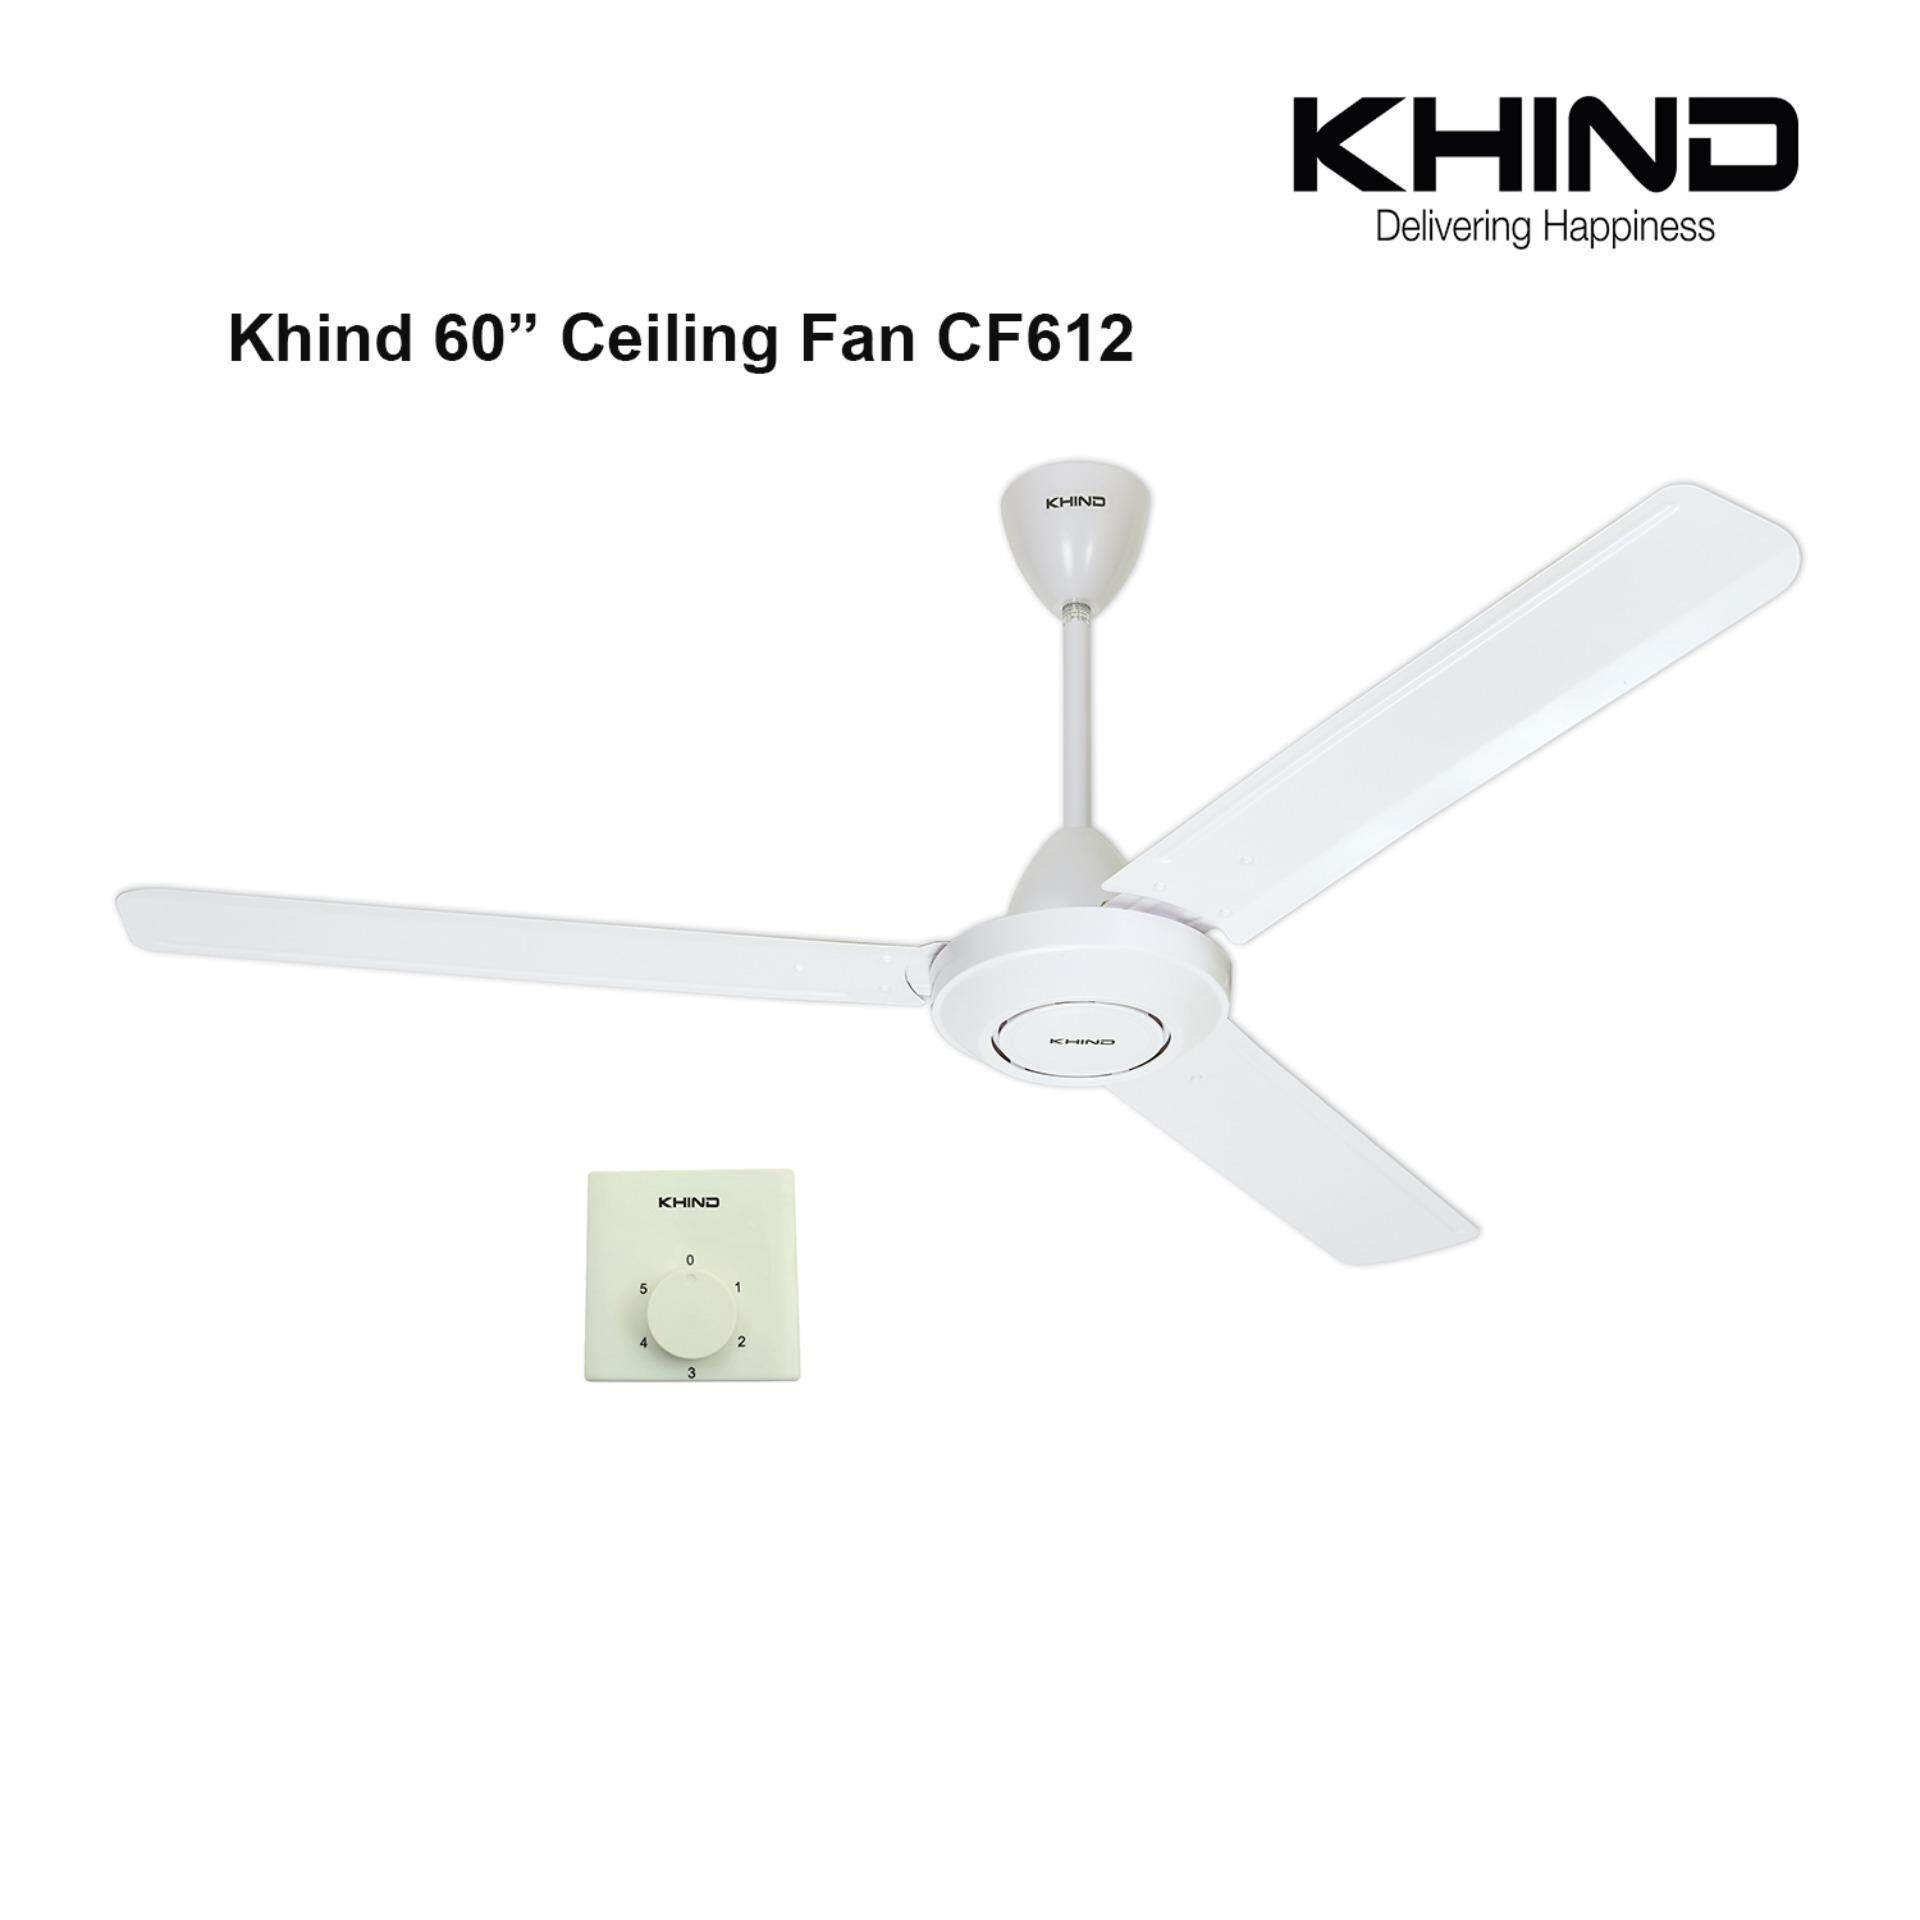 Khind 60 ceiling fan cf612 aerodynamic blade 5 speed strong silent khind 60 ceiling fan cf612 aerodynamic blade 5 speed strong silent breeze energy saving 5 star energy efficiency with speed regulator aloadofball Images